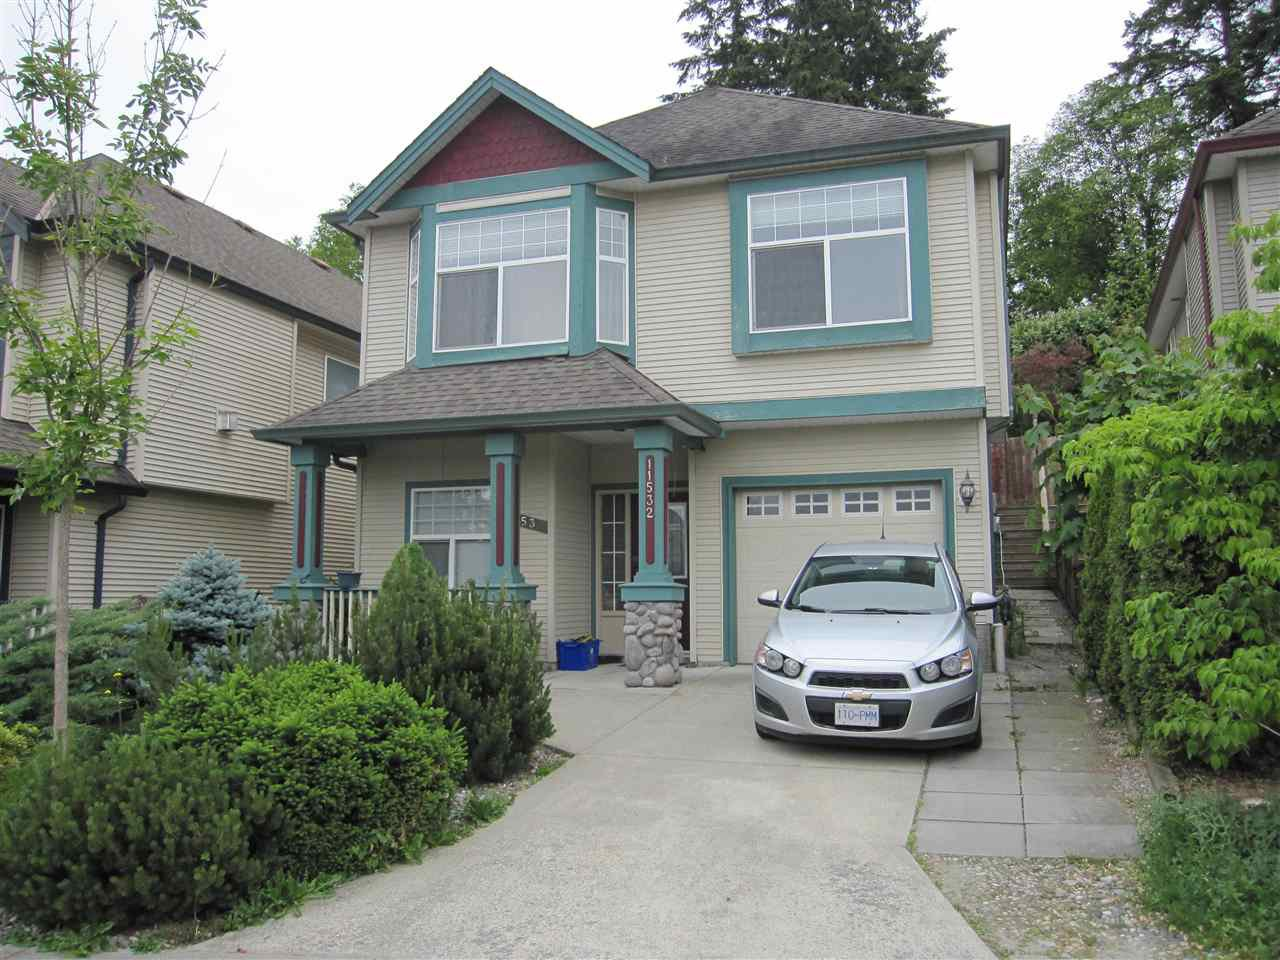 Main Photo: 11532 228 Street in Maple Ridge: East Central House for sale : MLS®# R2069865